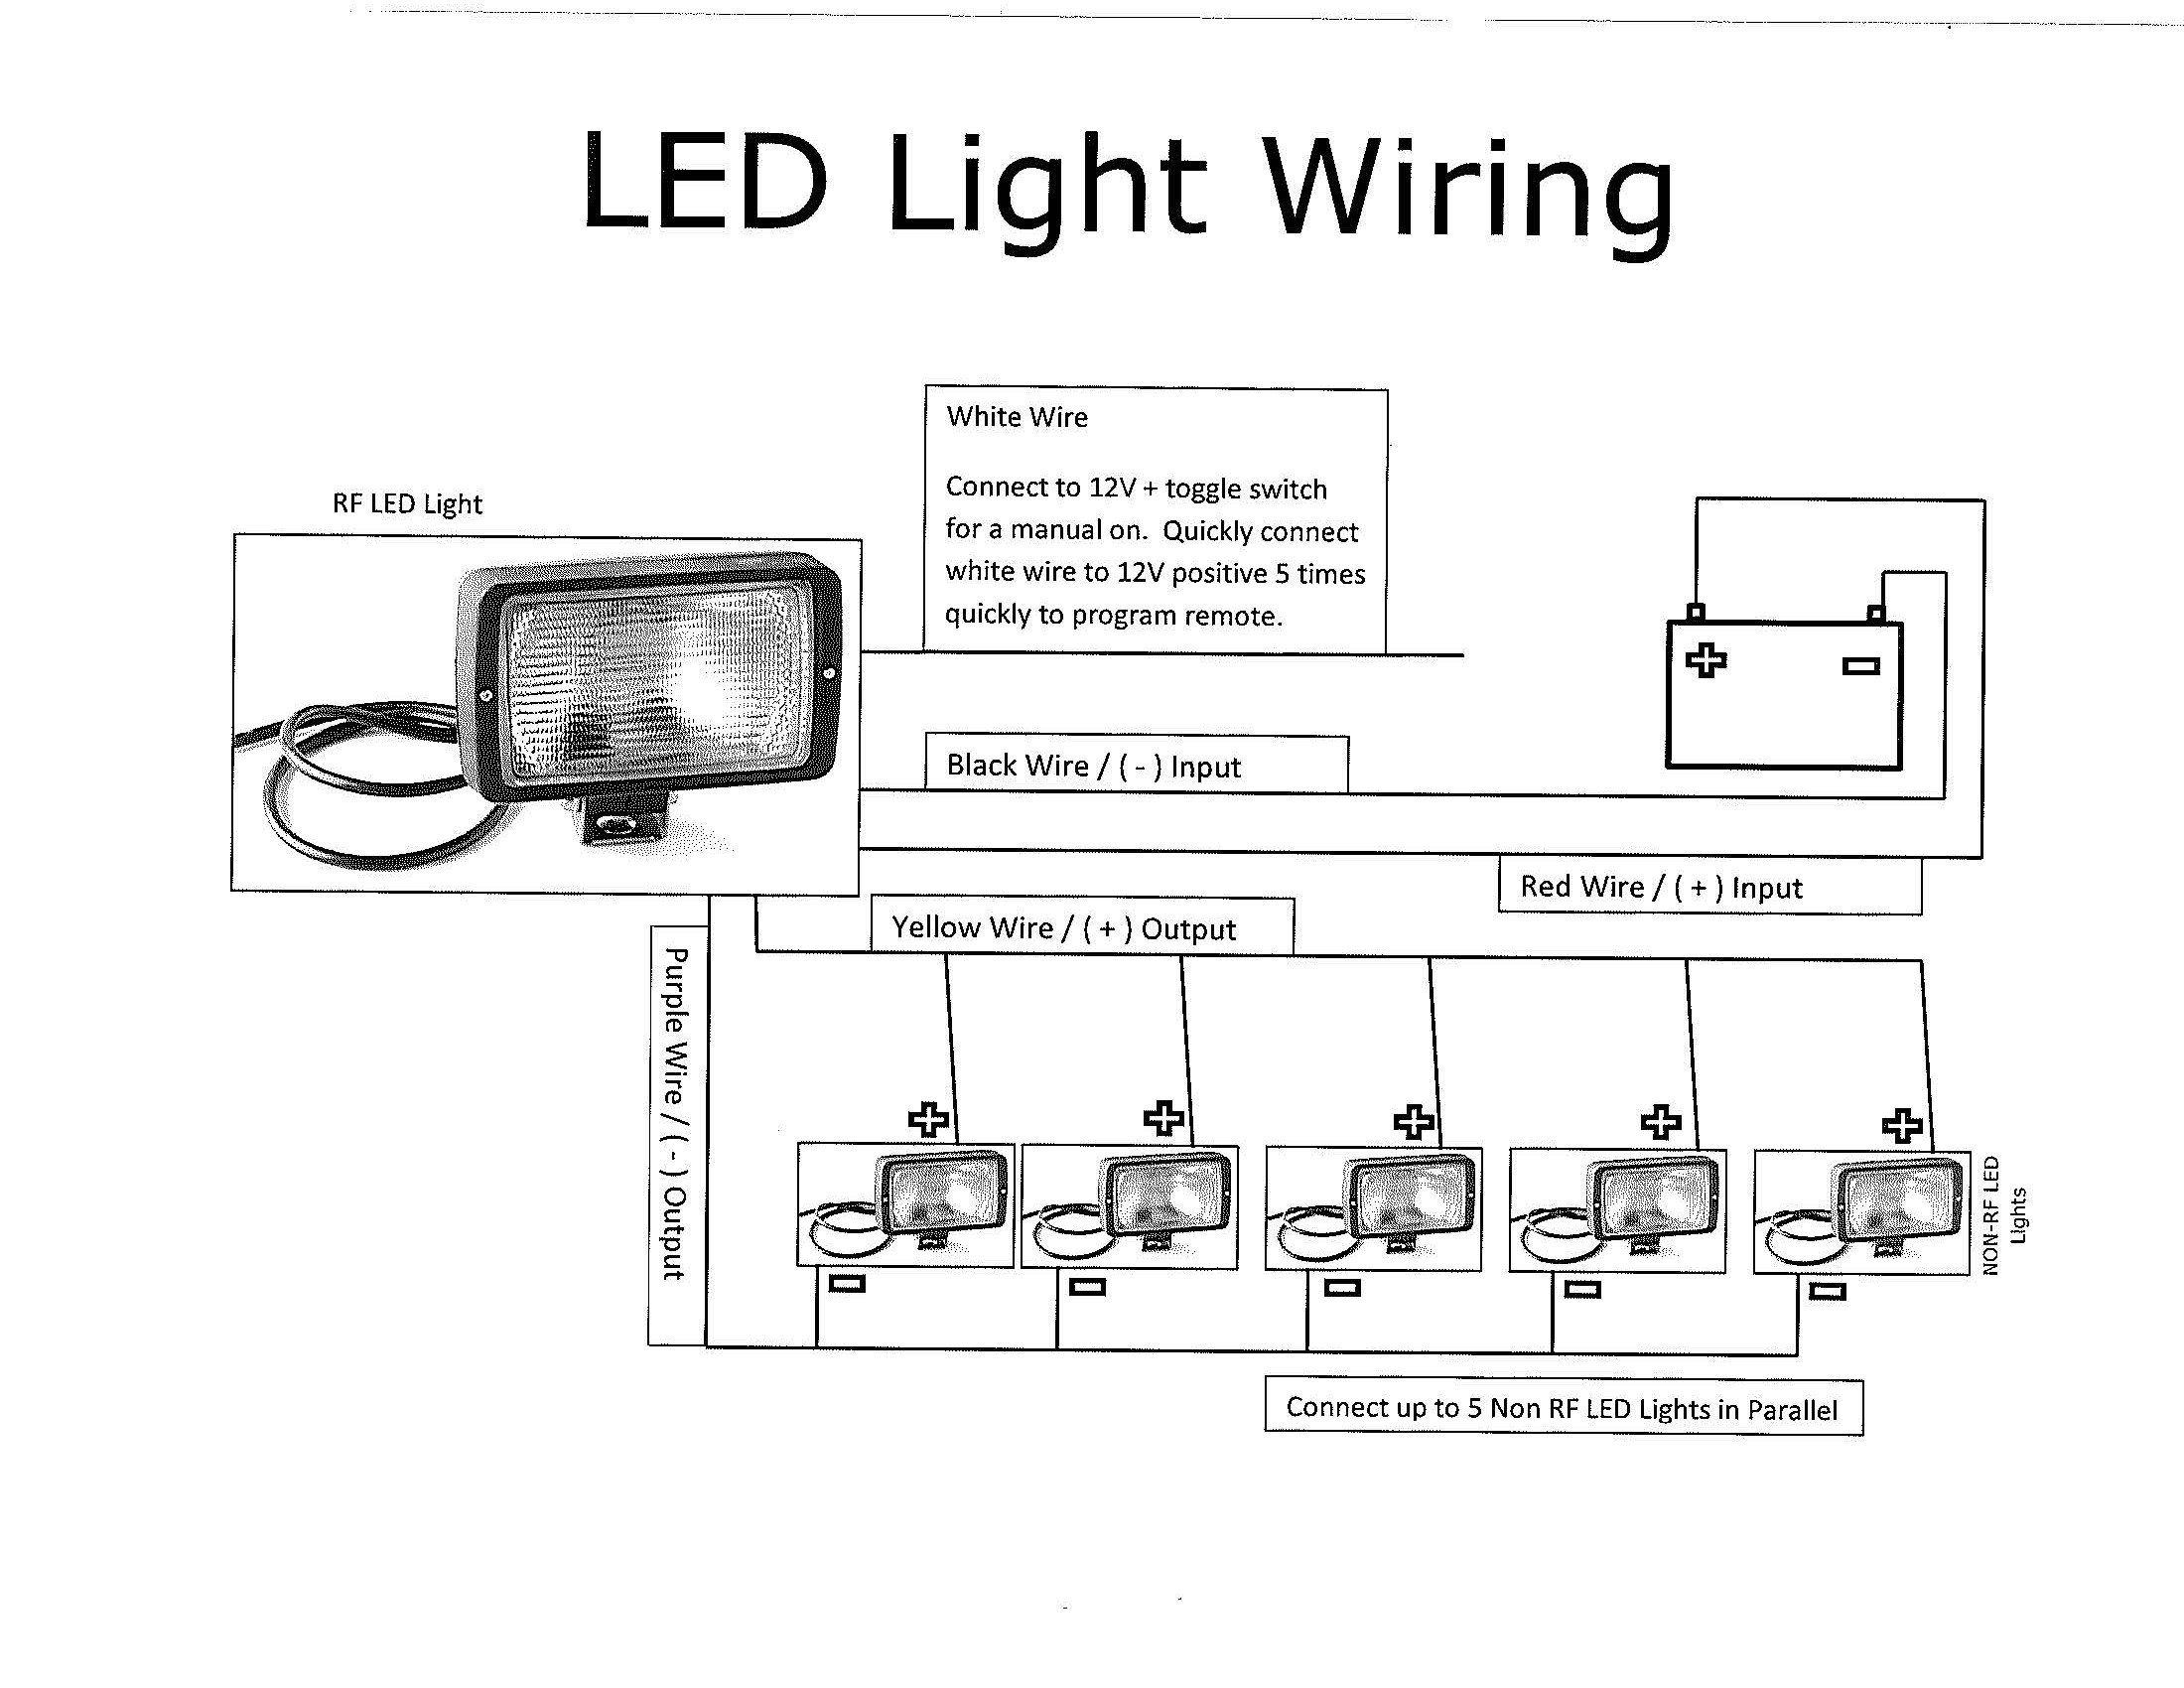 Wiring 12v led rv lights electrical work wiring diagram led wire diagram led wiring diagram switch led image wiring led rh rujjiy tripa co wiring 12v led lights for wall 12v light bulbs for rvs swarovskicordoba Image collections